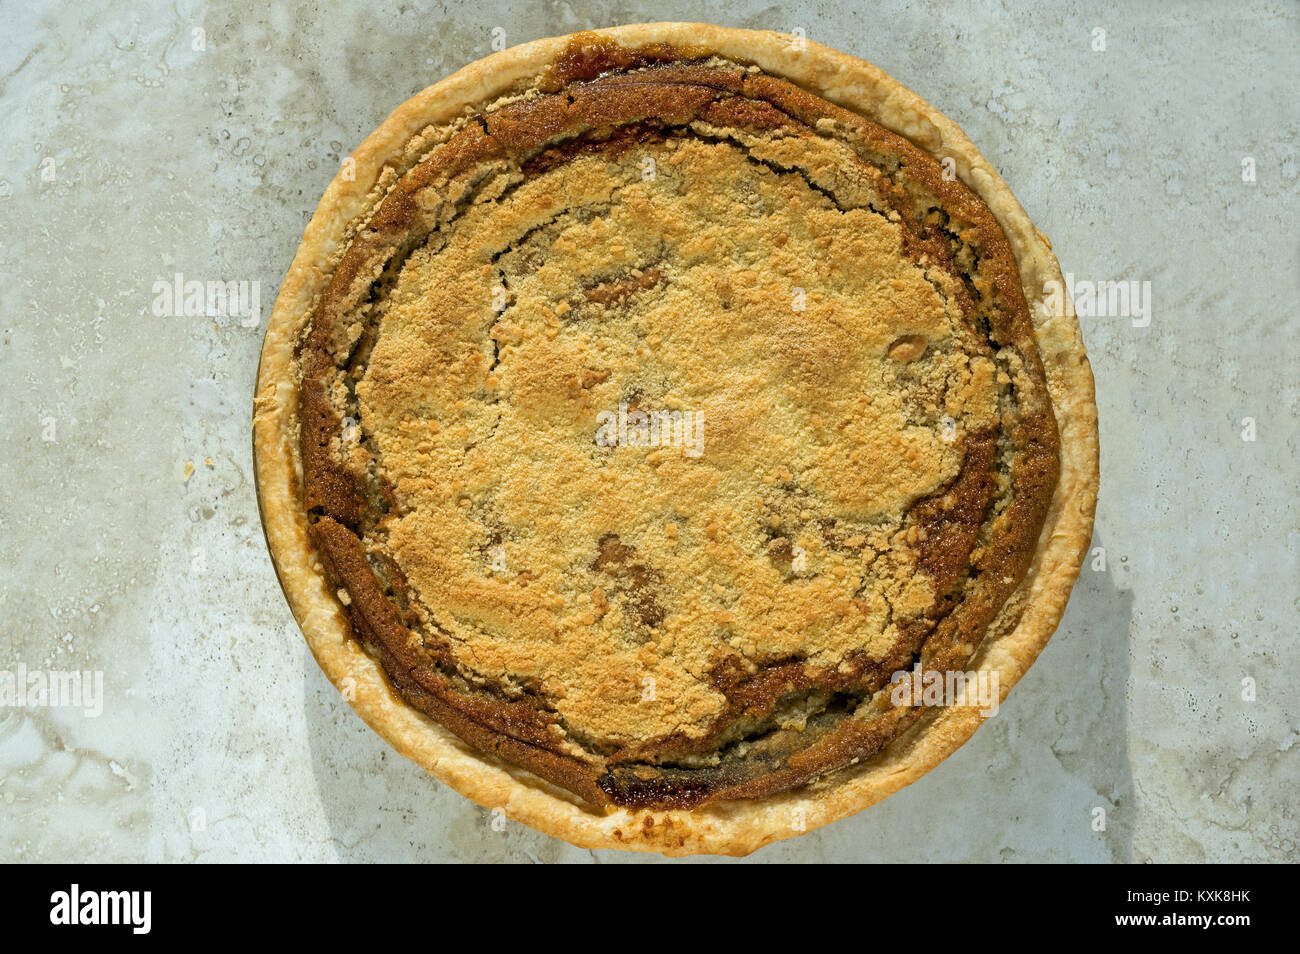 Freshly baked shoofly pie with sugar and molasses. - Stock Image